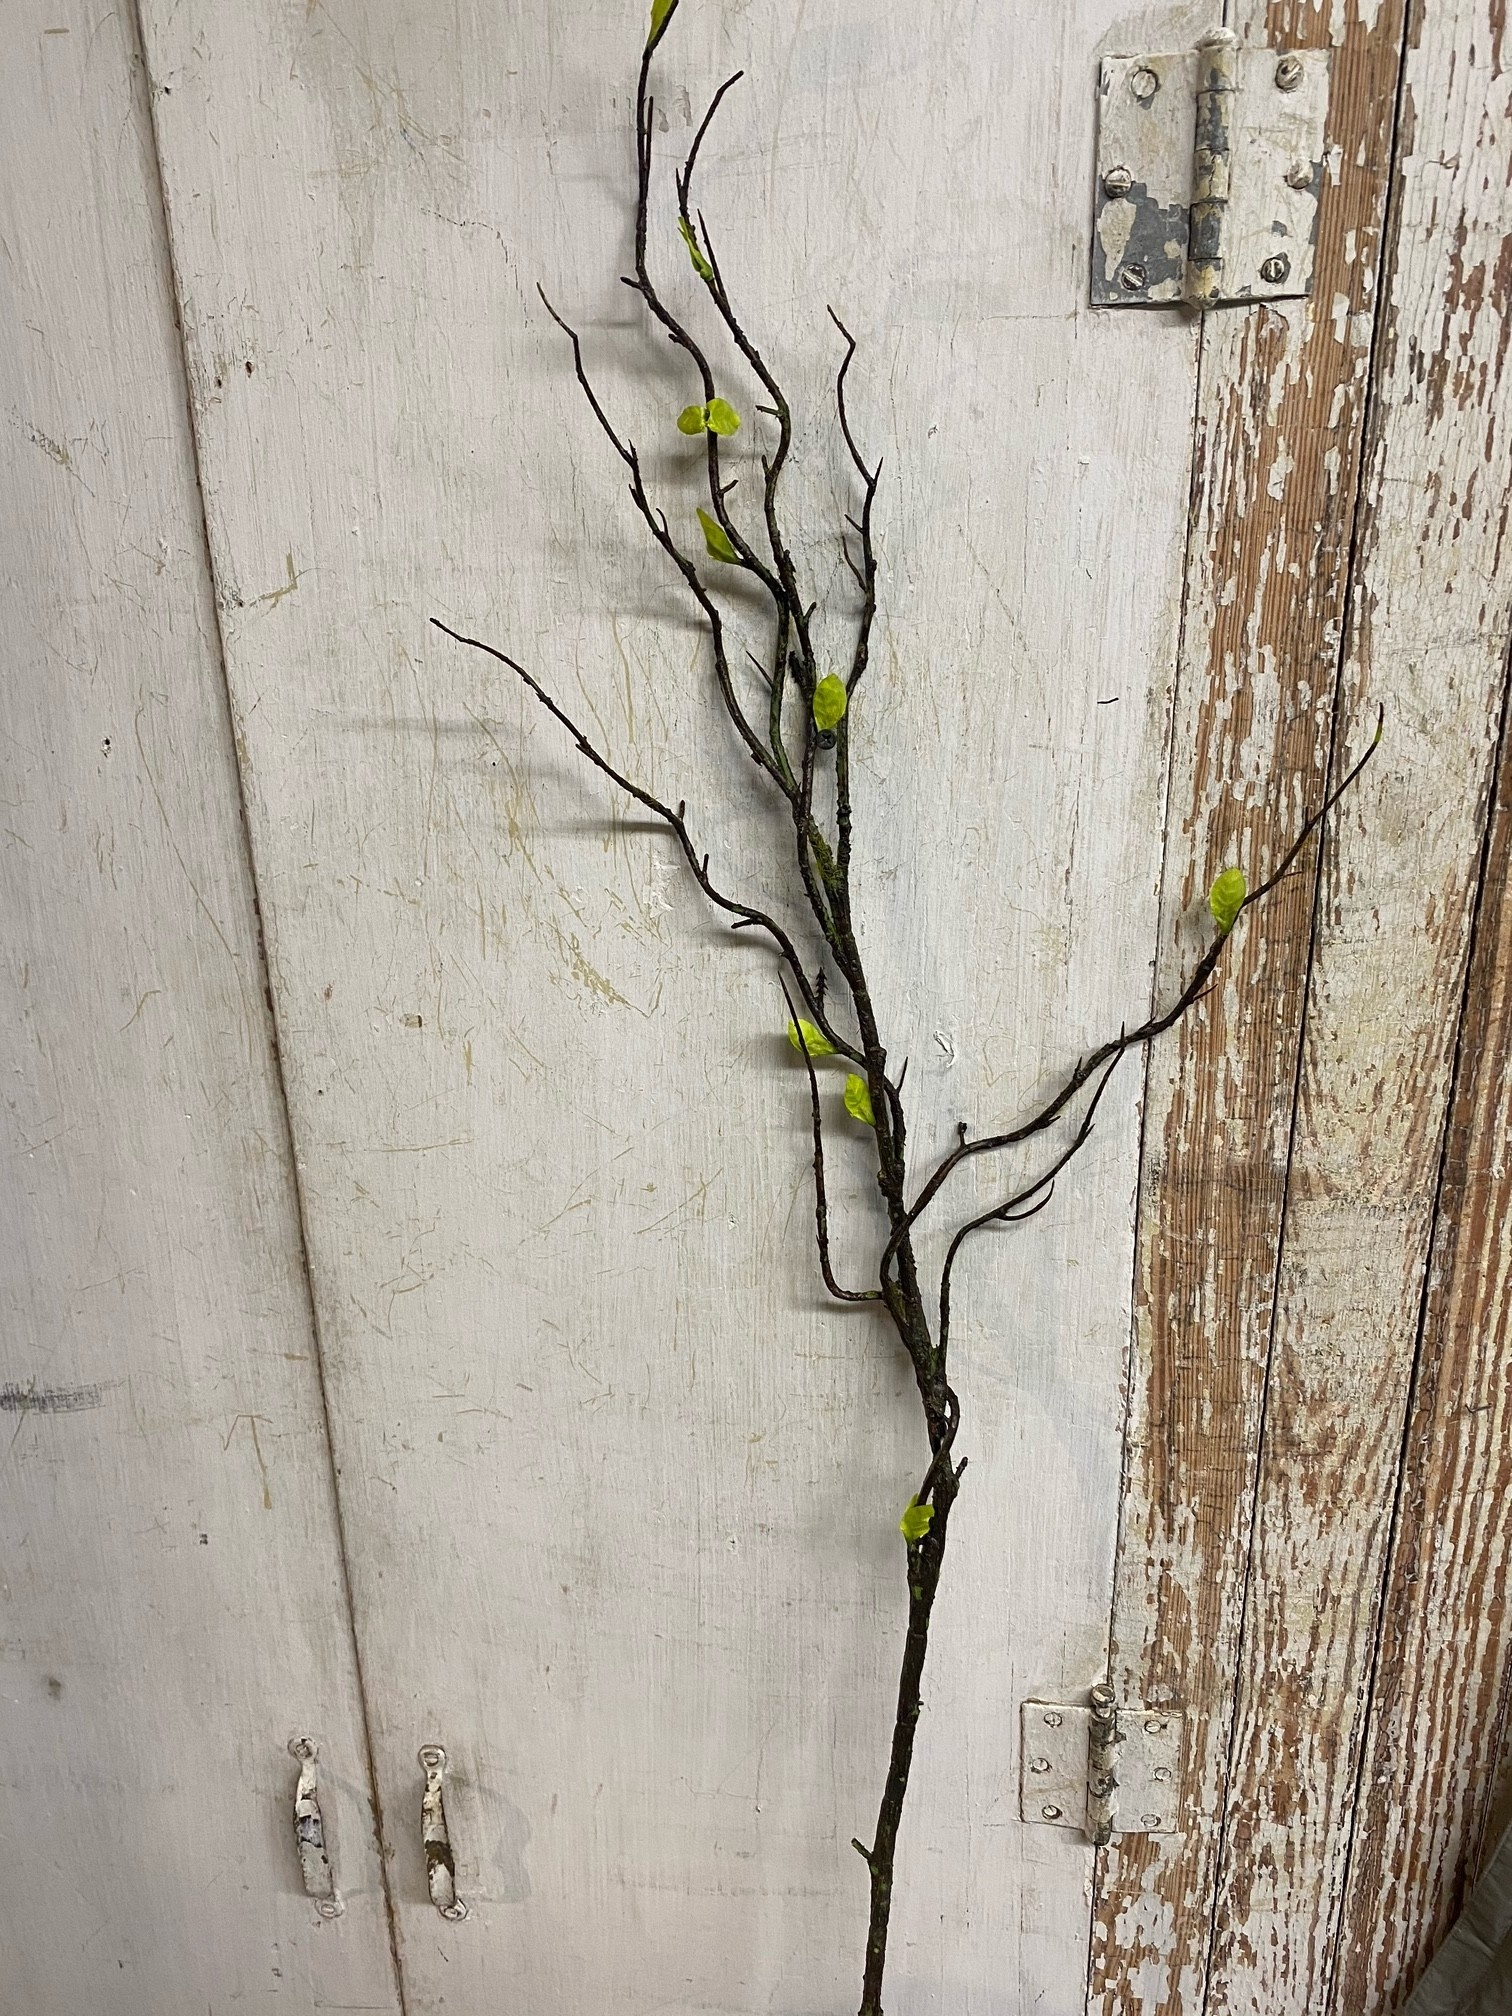 Curly Willow Stem w/ Leaves